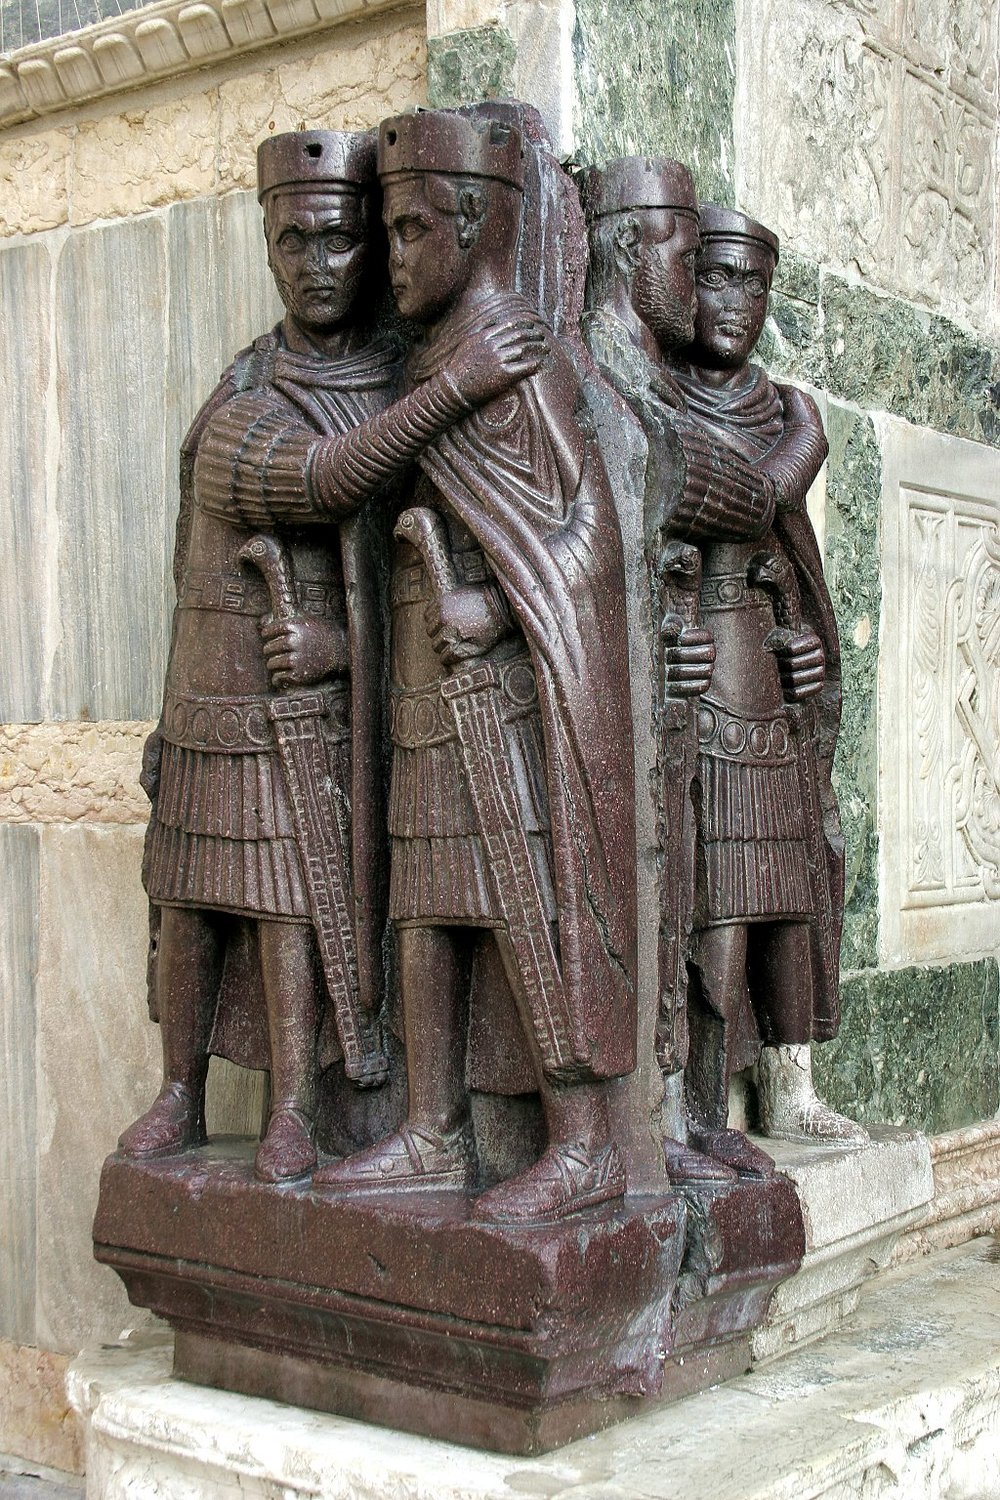 The tetrarchs getting friendly. These are the four tetrarchs from the fourth century, slightly different from the Herodian Tetrarchy.